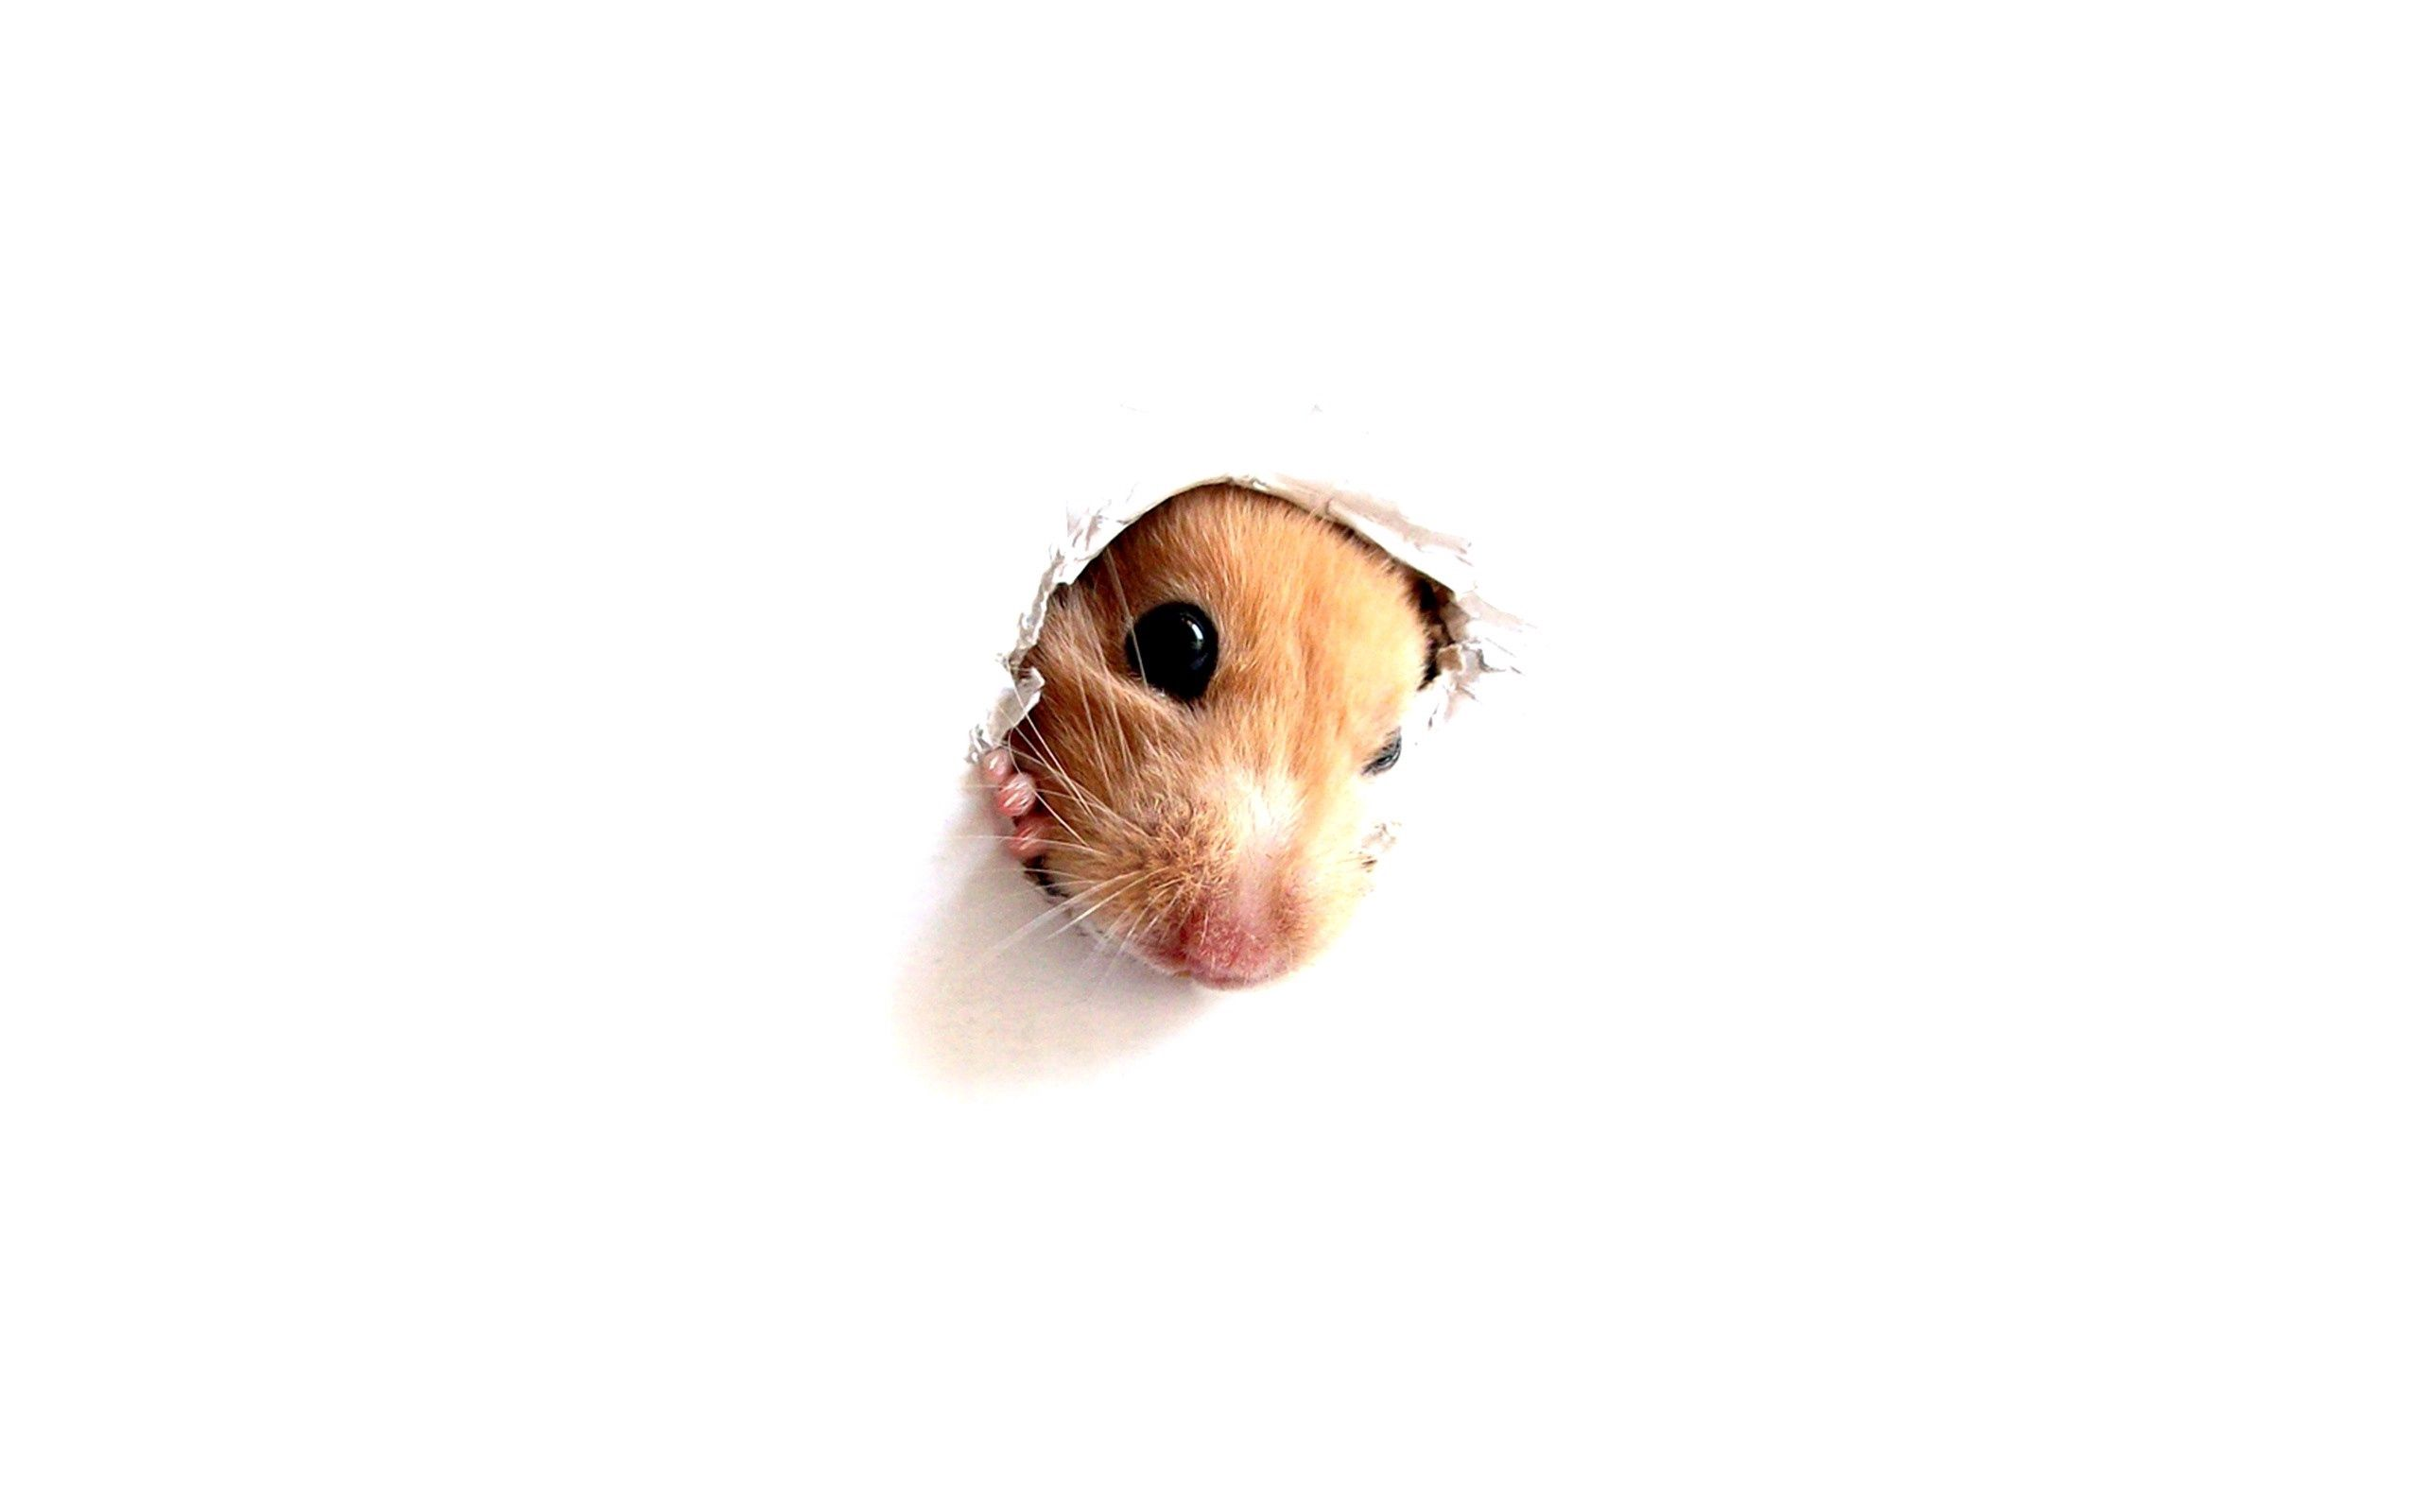 114364 download wallpaper Animals, Hamster, Rodent, Muzzle, Paper, Hole screensavers and pictures for free